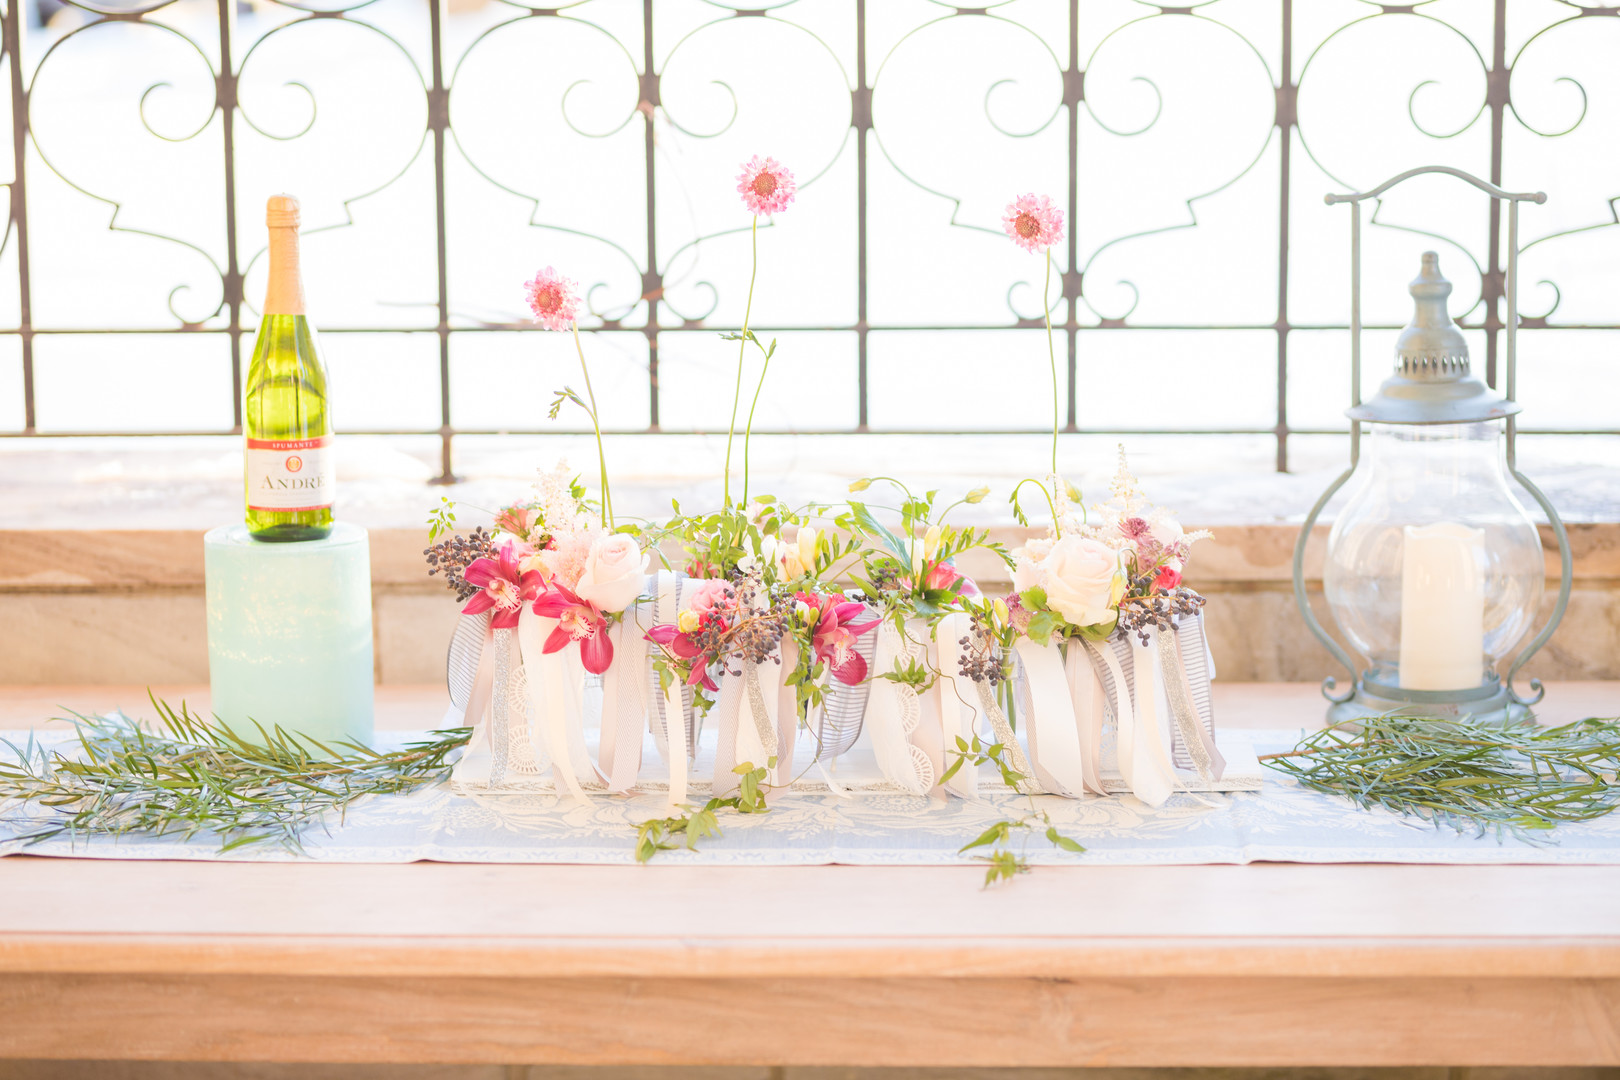 DIY centerpiece idea with ribbon and flowers in glasses